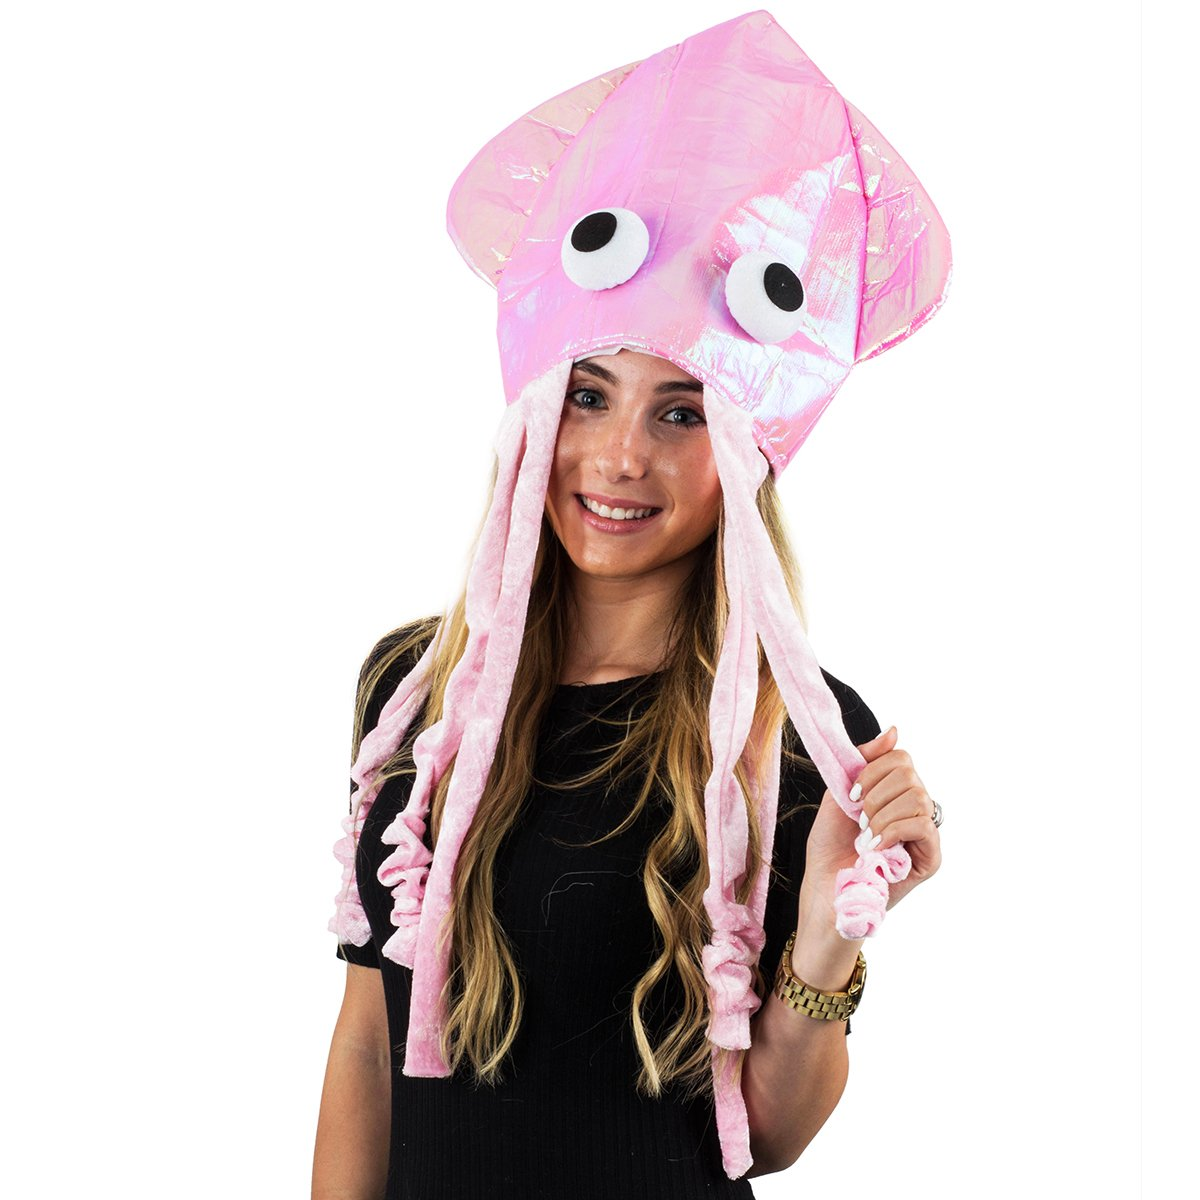 beca4f35f39 Galleon - Squid Hat - Funny Fun And Crazy Hats In Many Styles - Funny Party  Hats (Shiny Pink Squid Hat)